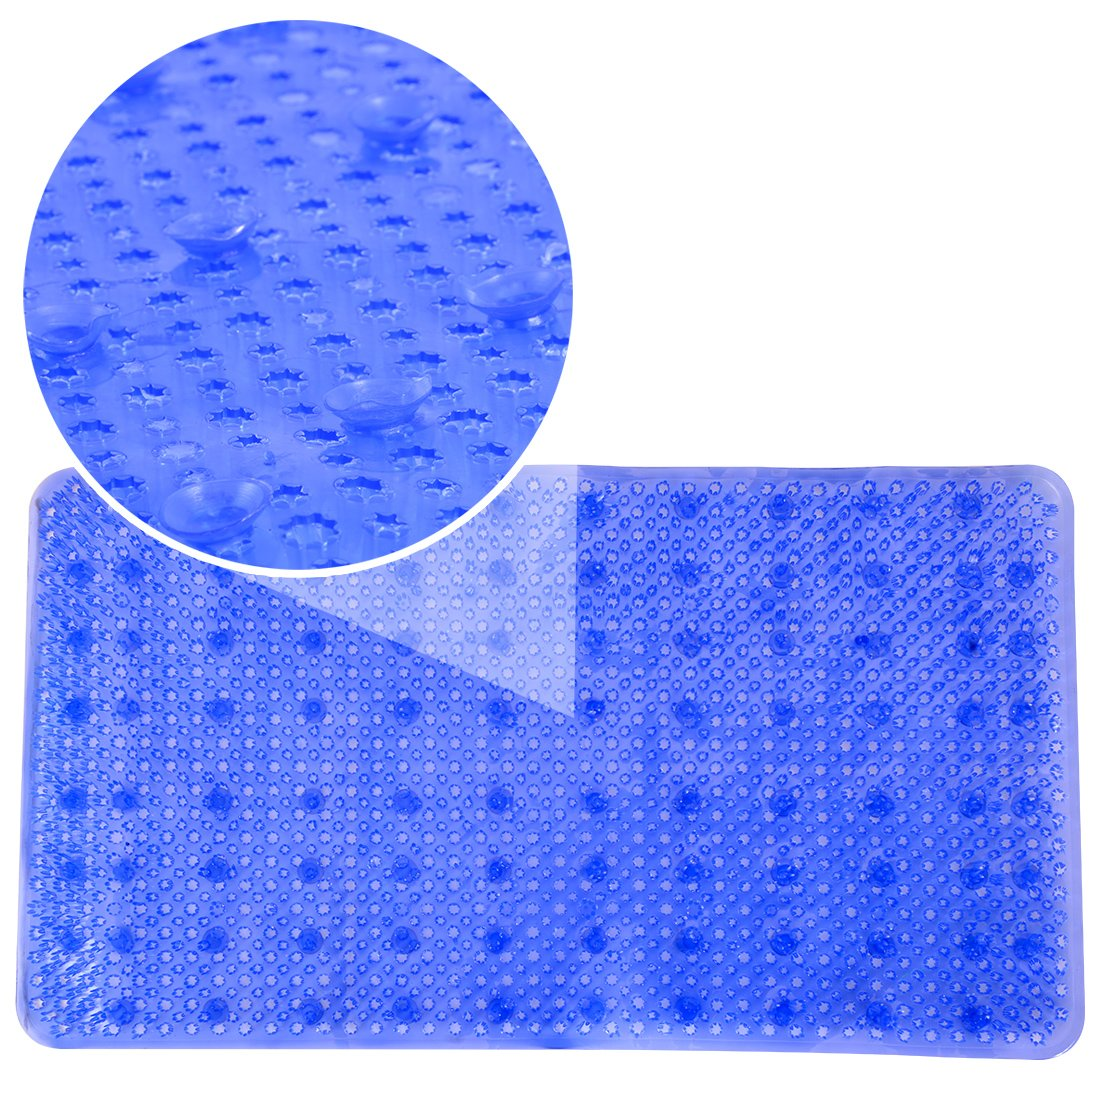 Clear YHLCSQ Soft As Grass Bath Mats Shower and Tub Mat Foot Scrubber Non-Slip Anti-Bacterial Machine Washable PVC Suction Rectangle 25/×14 inch footmat